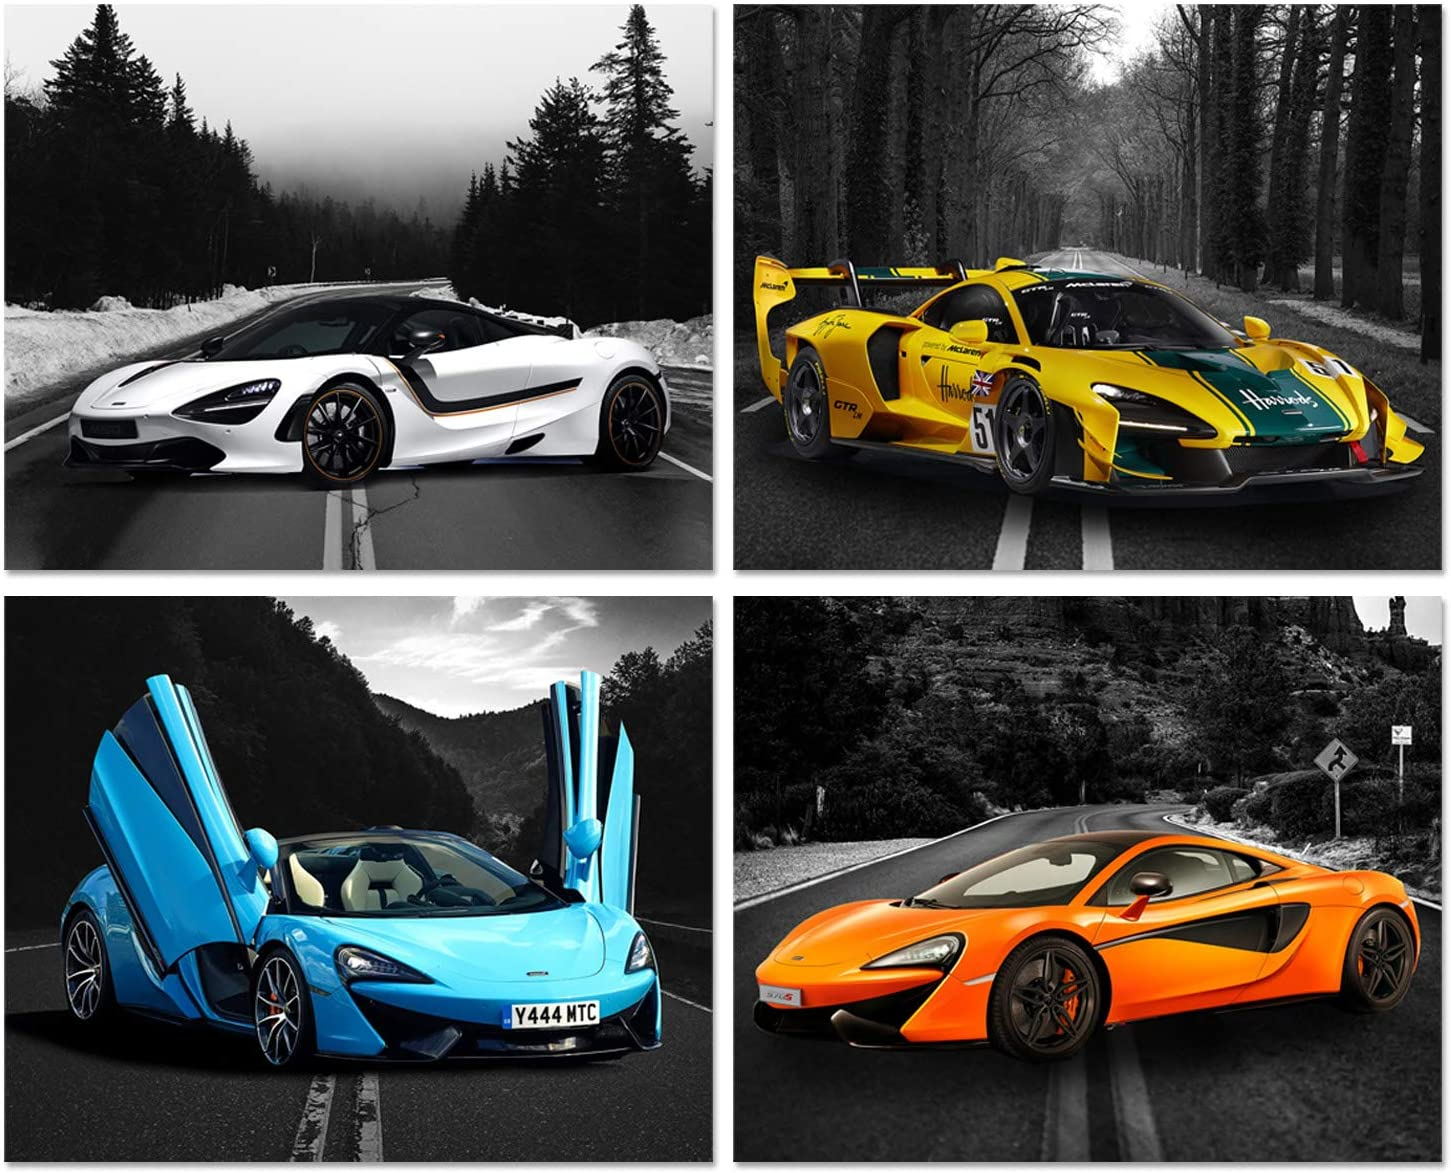 Car Posters - Mclaren Posters - Senna GTR, 570S Spider Curacao, 720S MSO Sports Car Wall Art - Supercar Decor Set of 4 Unframed (8x10 inches) Exotic Supercars Pictures - Mclaren Greyscale